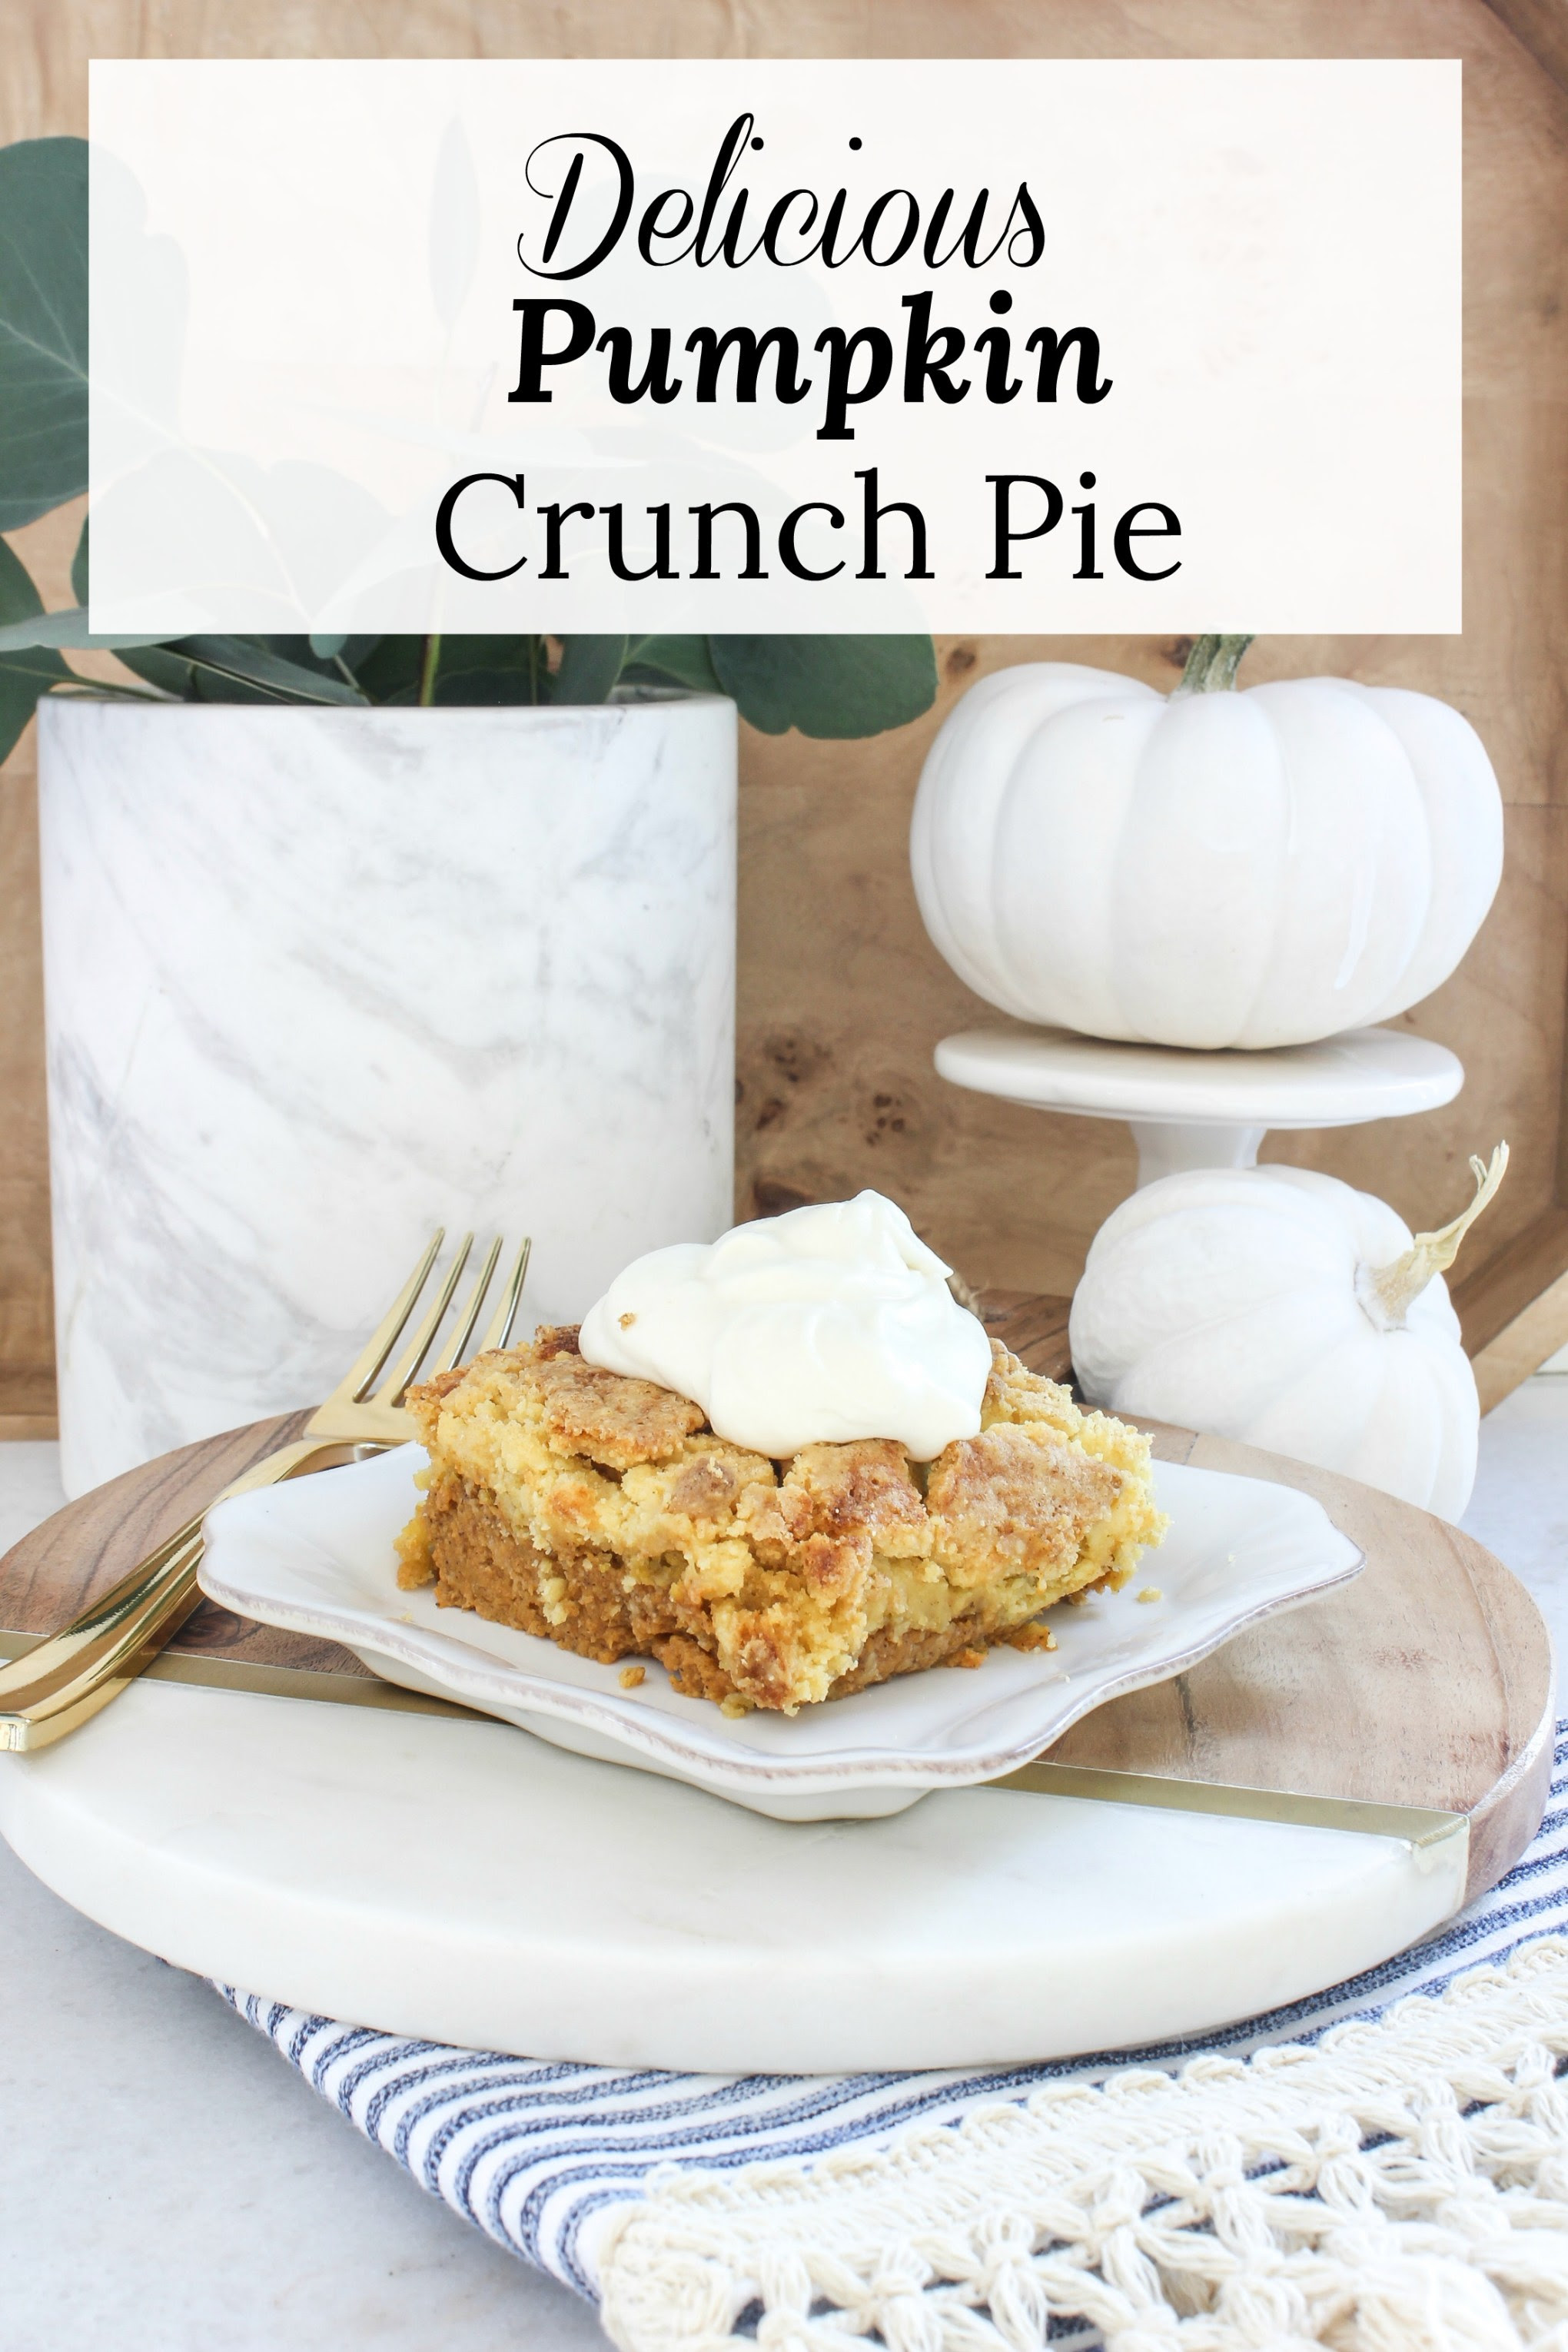 umpkin Crunch Pie | Meaningful Spaces